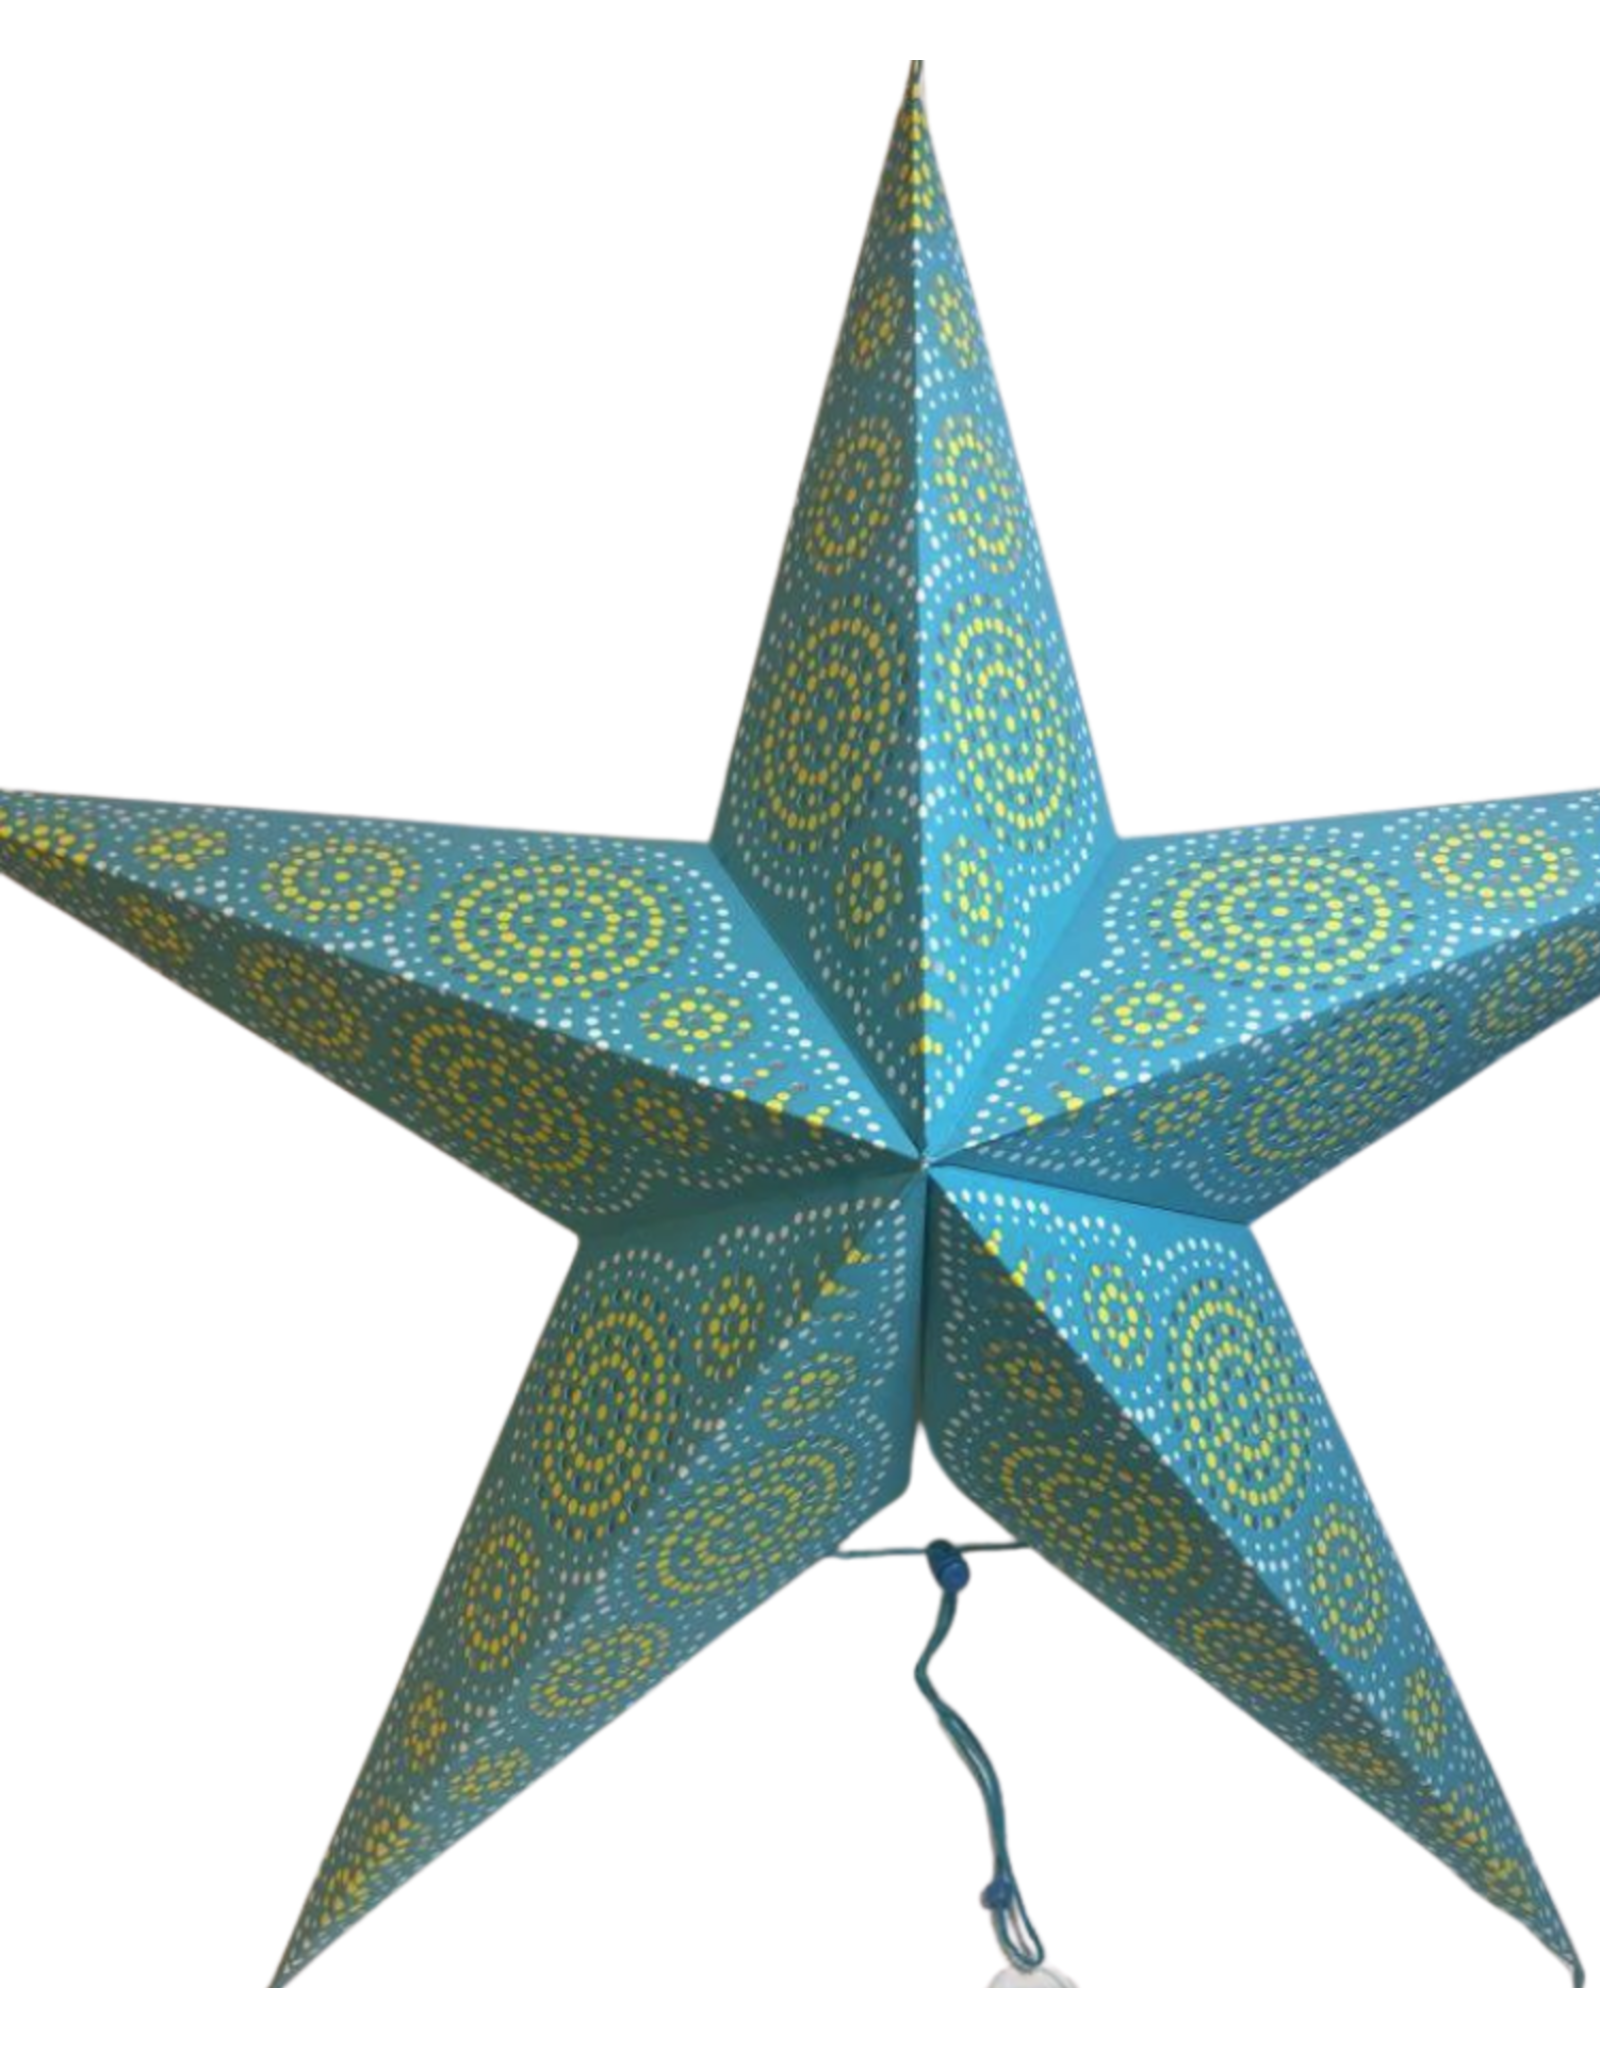 Ten Thousand Villages CLEARANCE Turquoise Paper Star Ornament, India